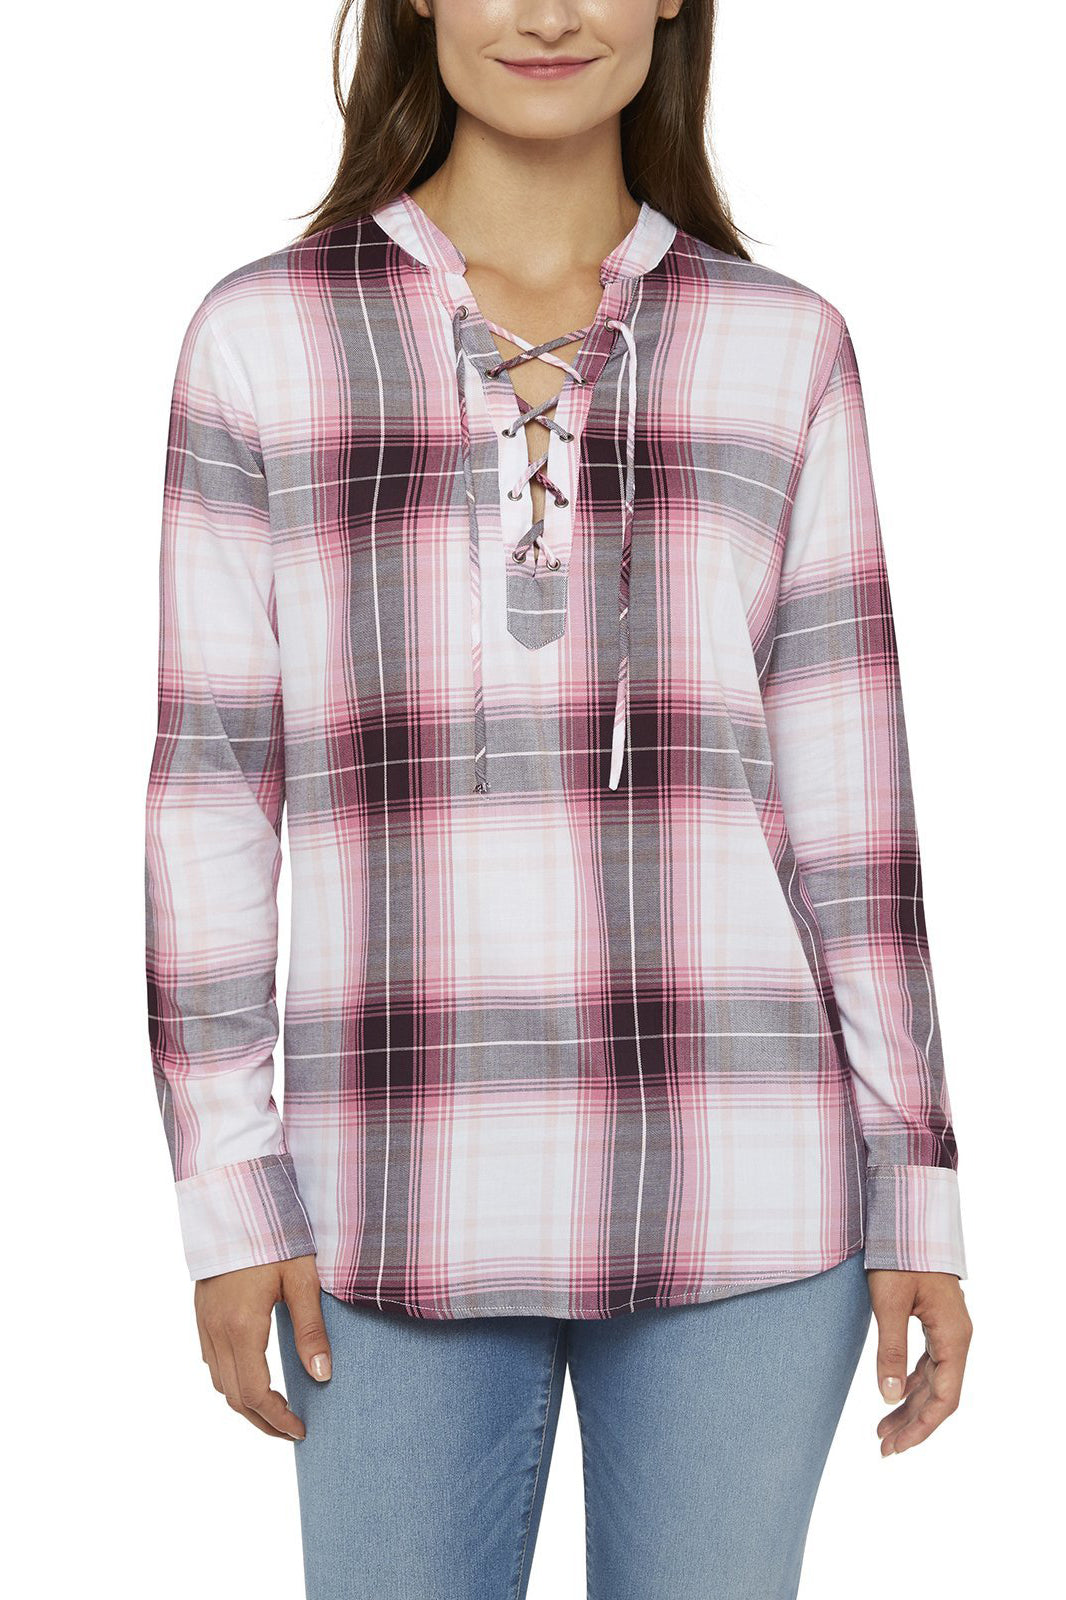 Women's Long Sleeve Draped Shirt With Lace-Front Neck in Pink Plaids | Ely Cattleman